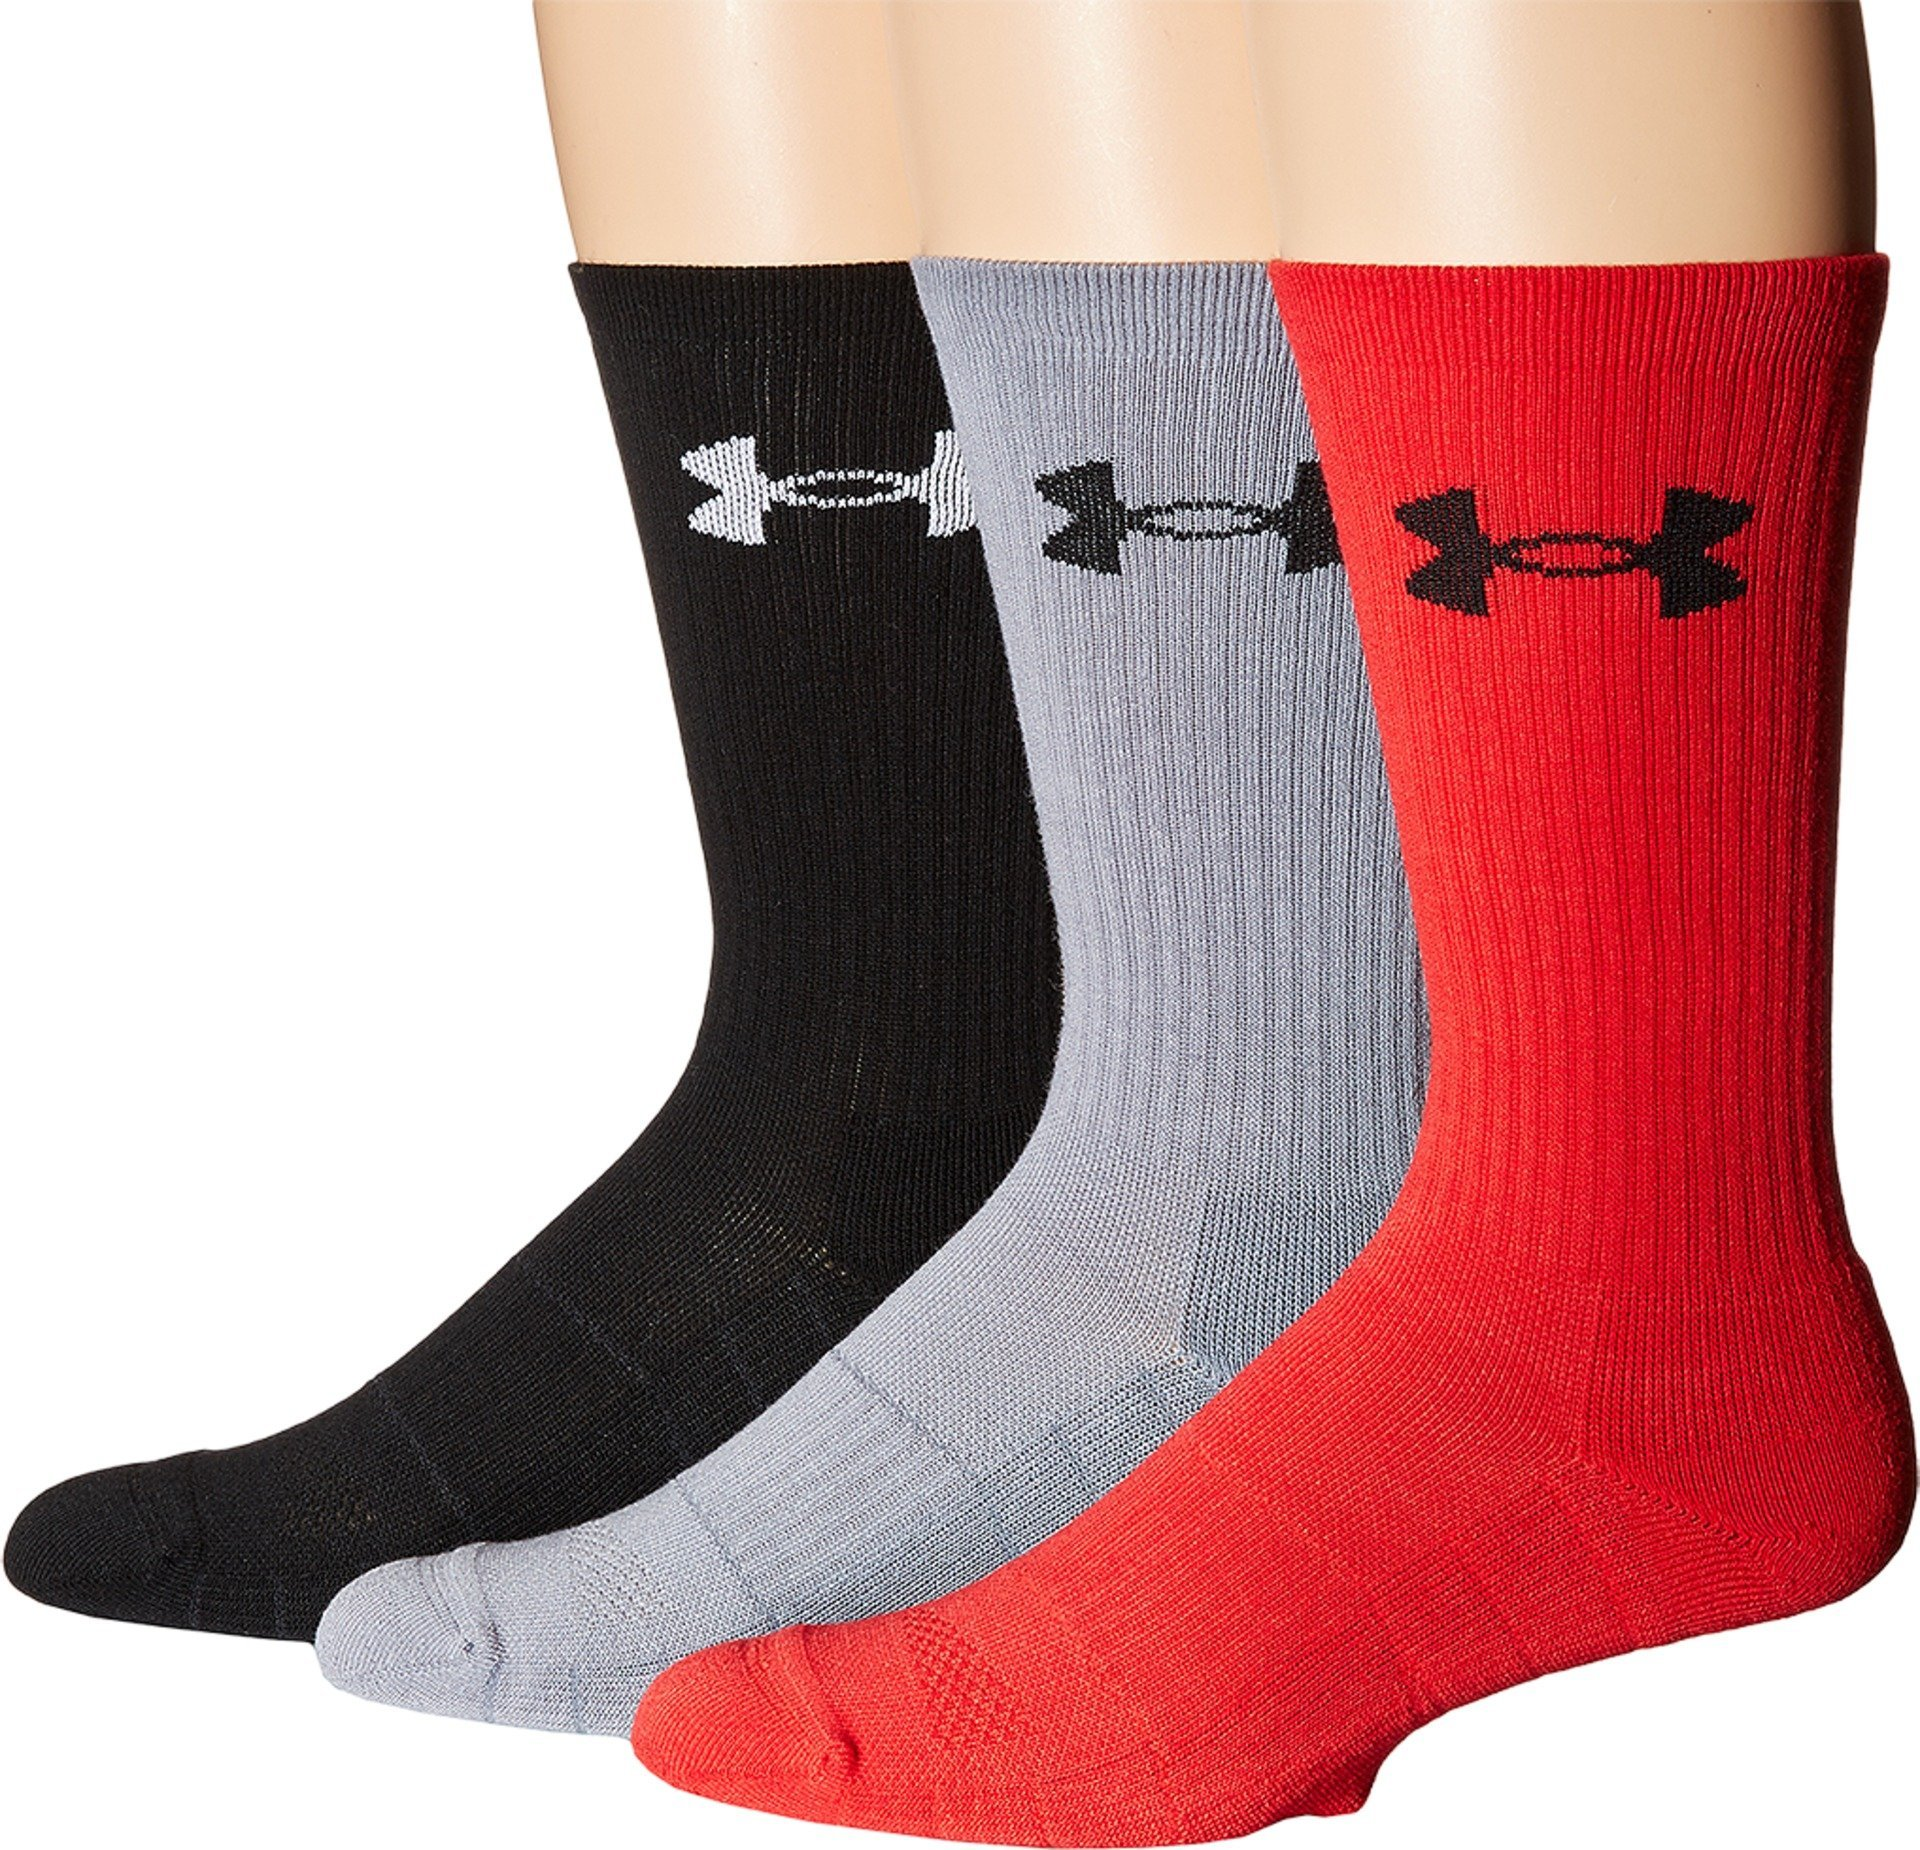 Under Armour Men's Elevated Performance Crew Socks (3 Pack), Rocket Red Assortment, Medium by Under Armour